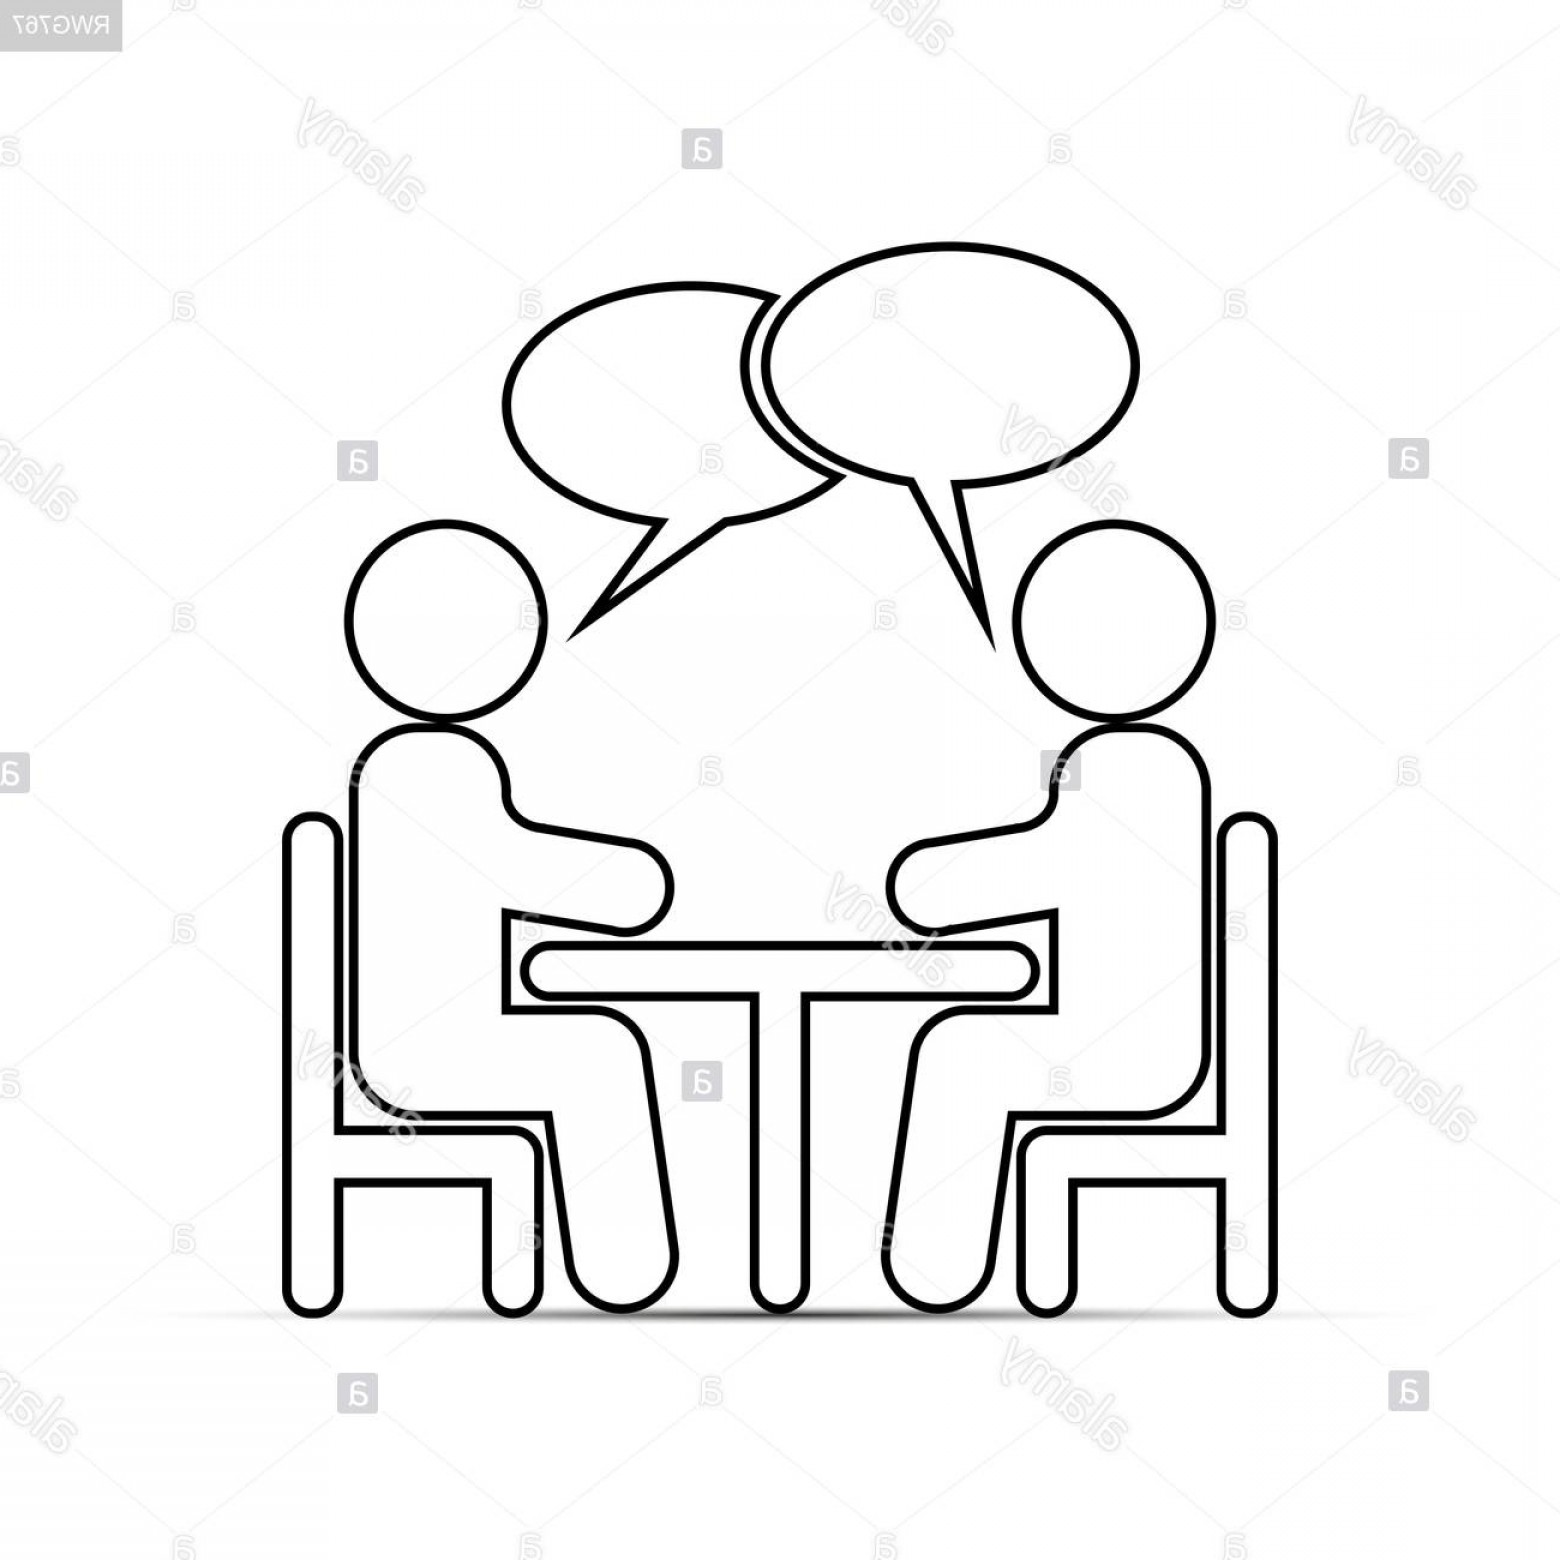 Two People Talking Vector Art: Two People Sitting At A Table And Talking Outline Drawing Image